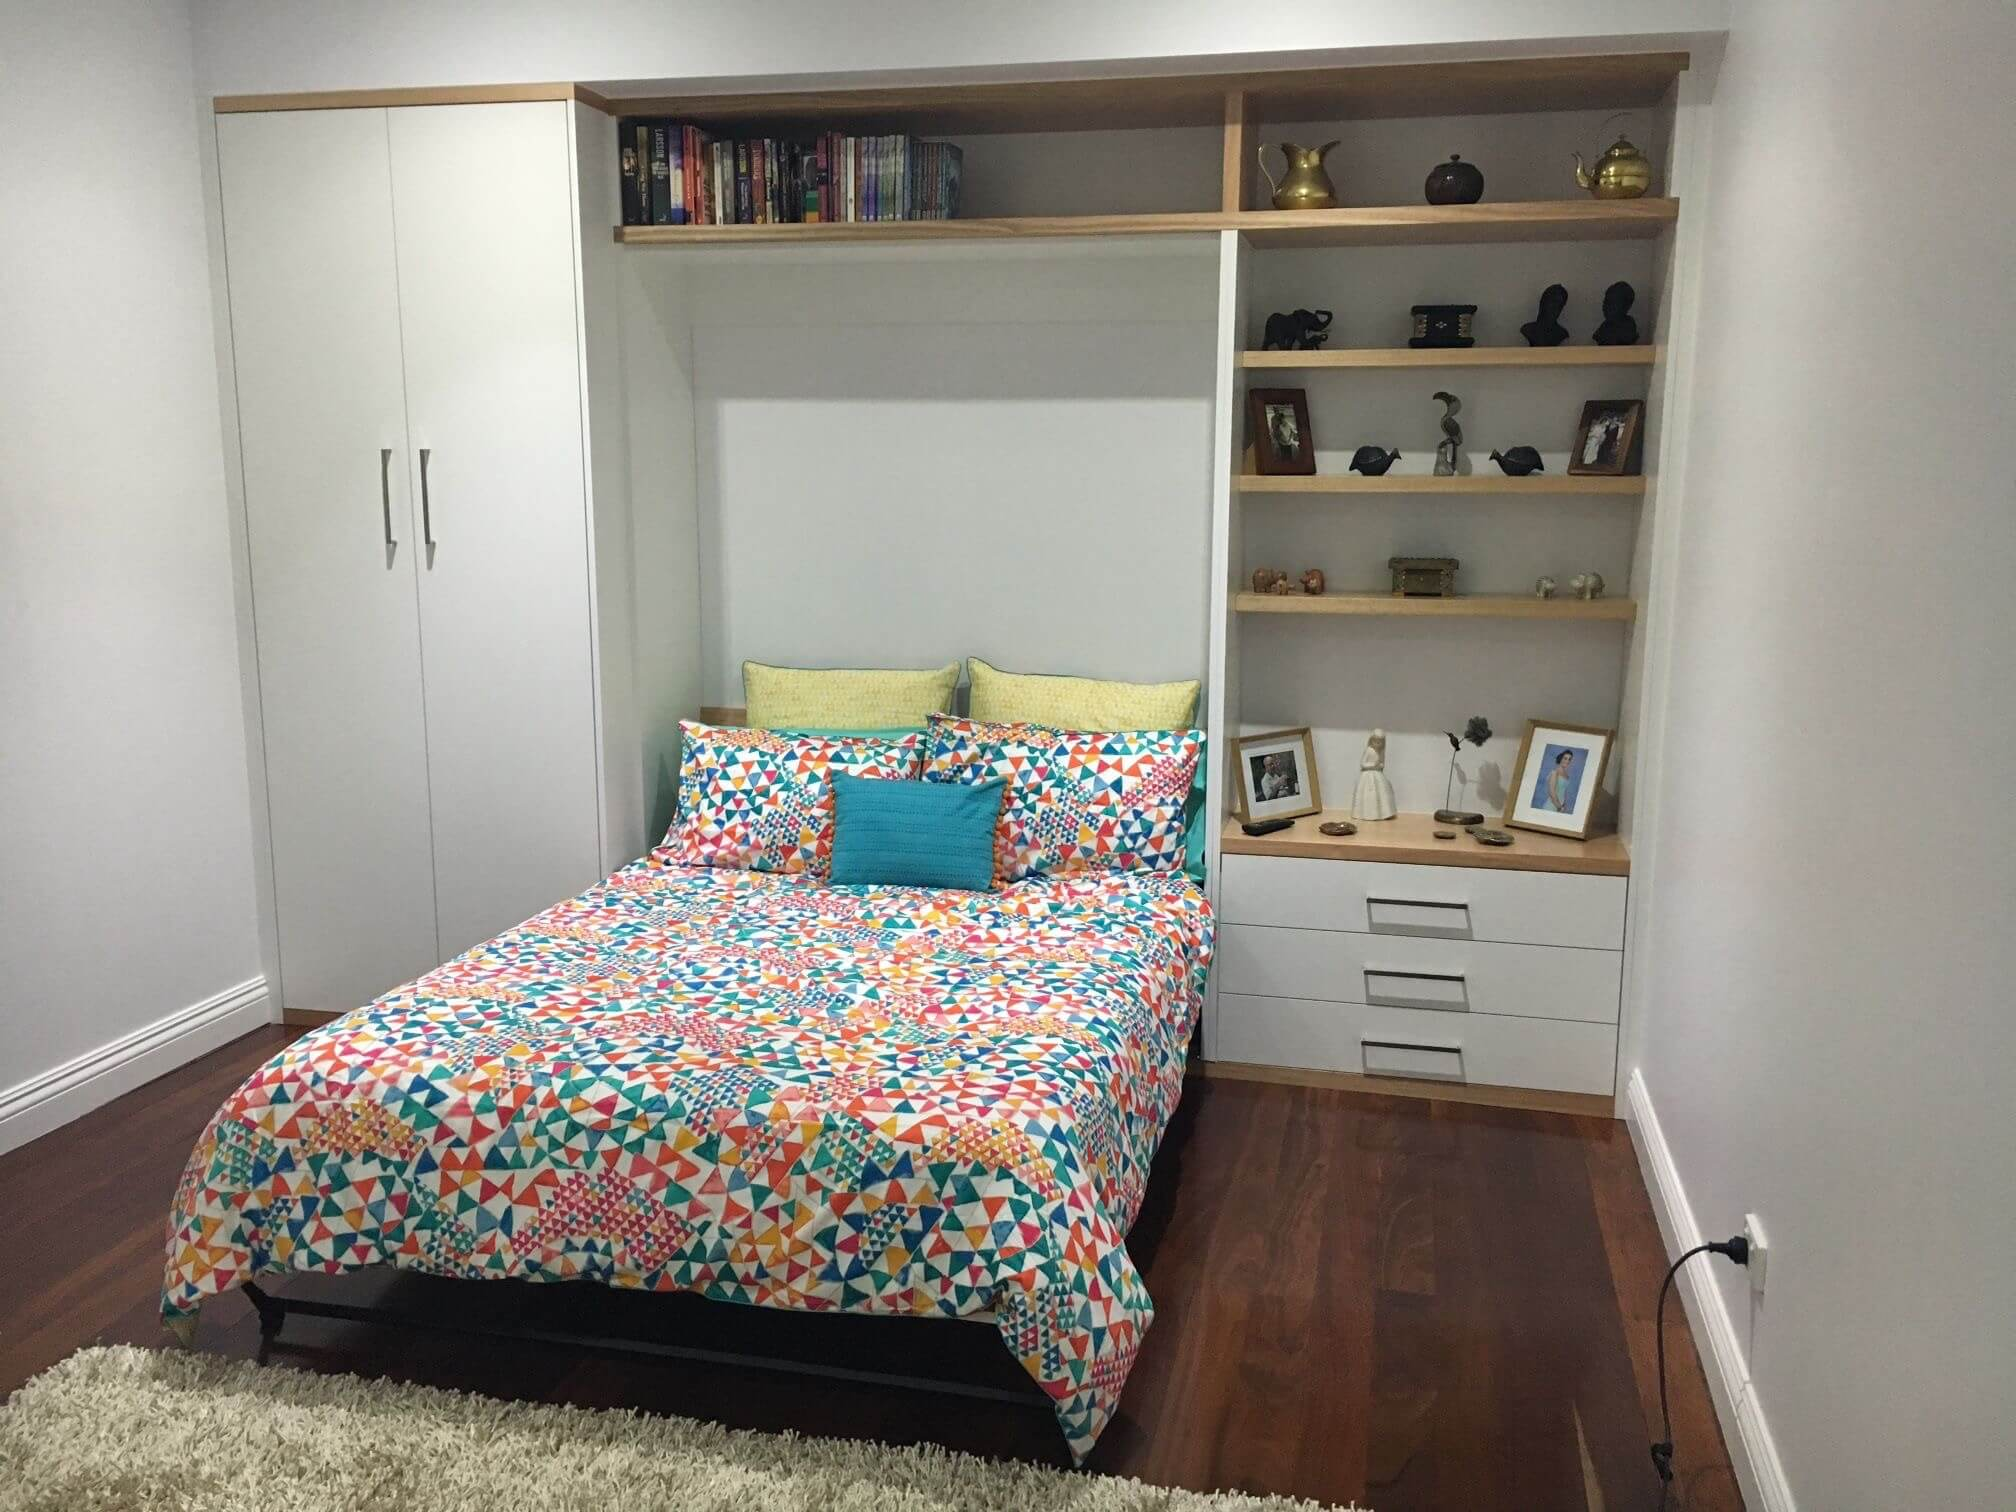 What is a wall bed?